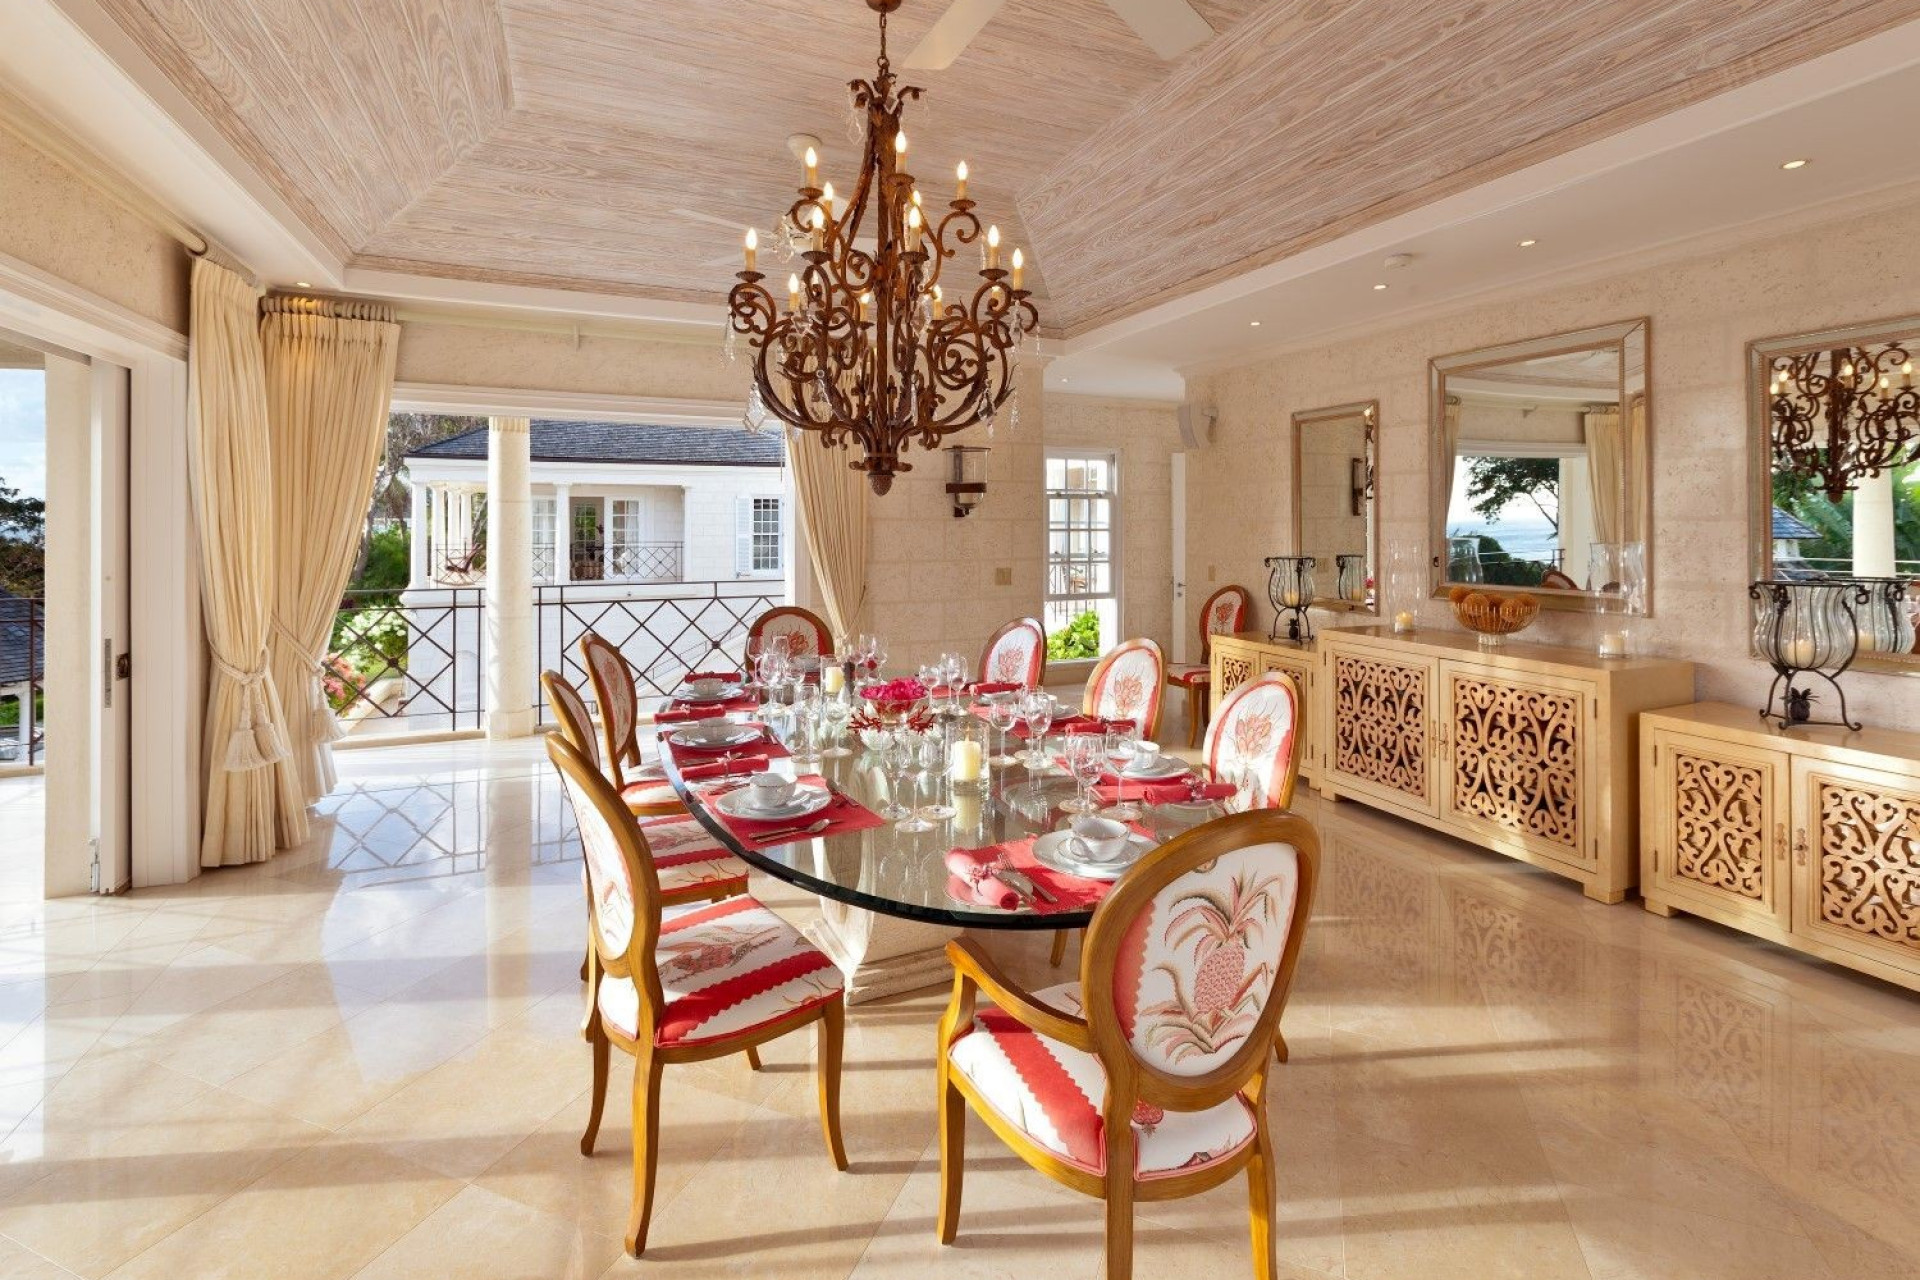 Pineapple Chair Lounge 5 Bedroom Villa Sugar Hill, Barbados with Private Pool, Putting Green & Sea Views